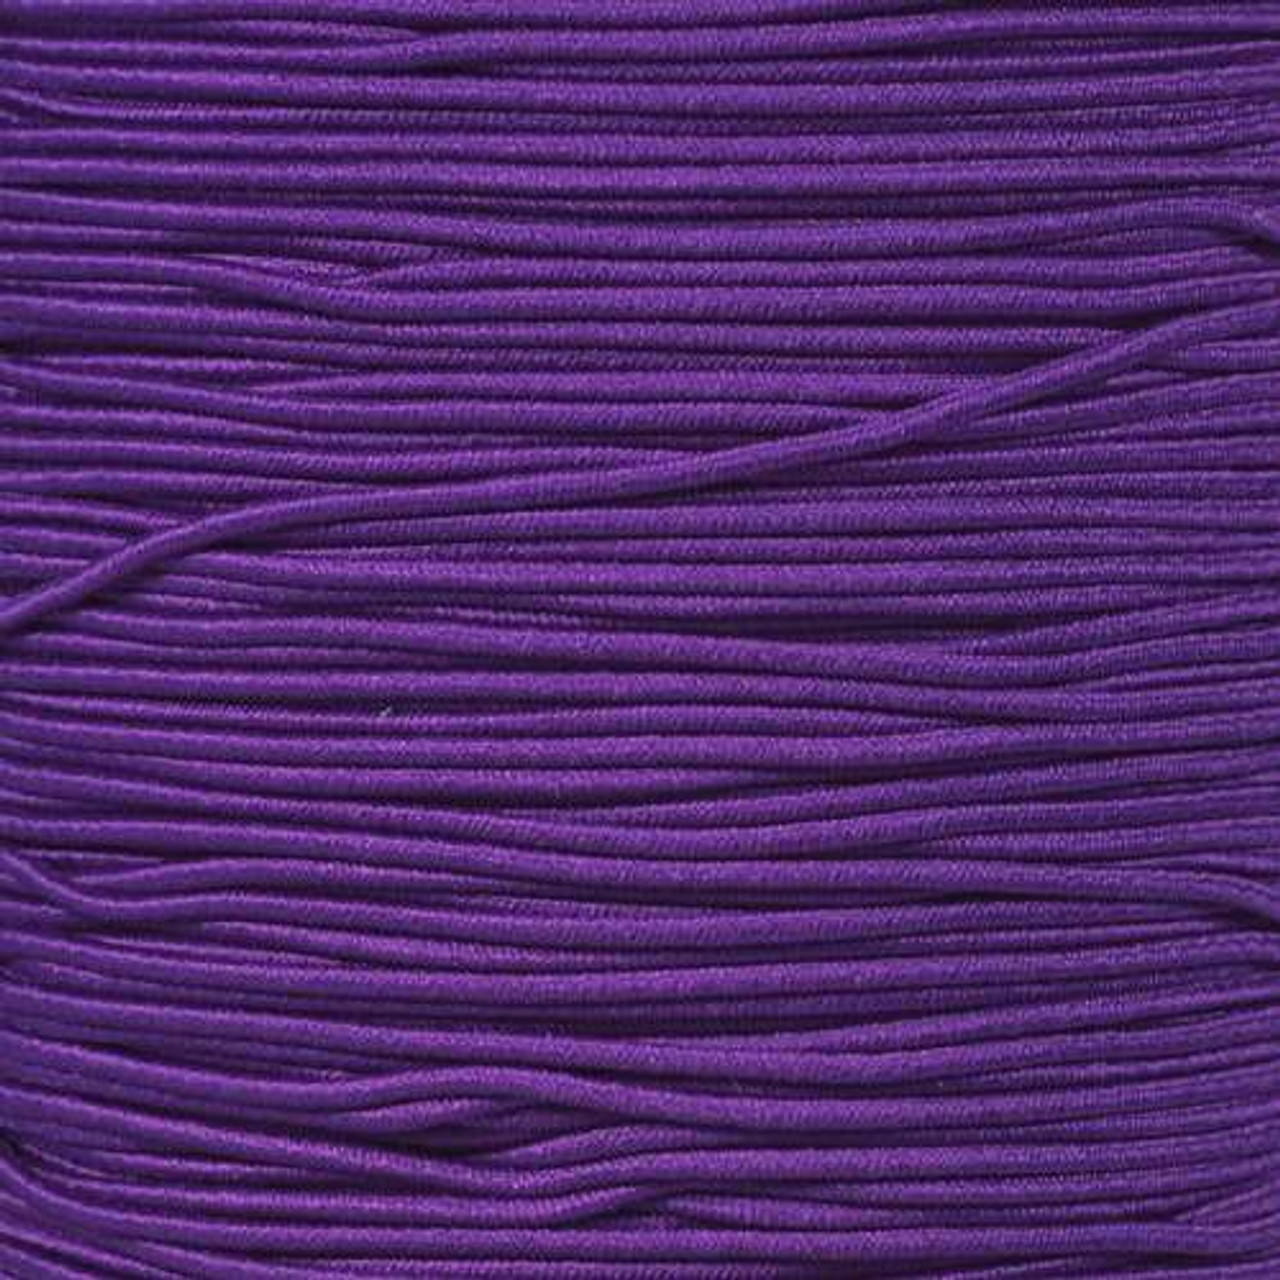 """PARACORD PLANET Elastic Bungee Nylon Shock Cord 2.5mm 1//32 1//8/"""" 5//16 1//4 1//16 3//16 3//8 1//2 inch Crafting Stretch String 10 25 50 /& 100 Foot Lengths Made in USA 5//8"""